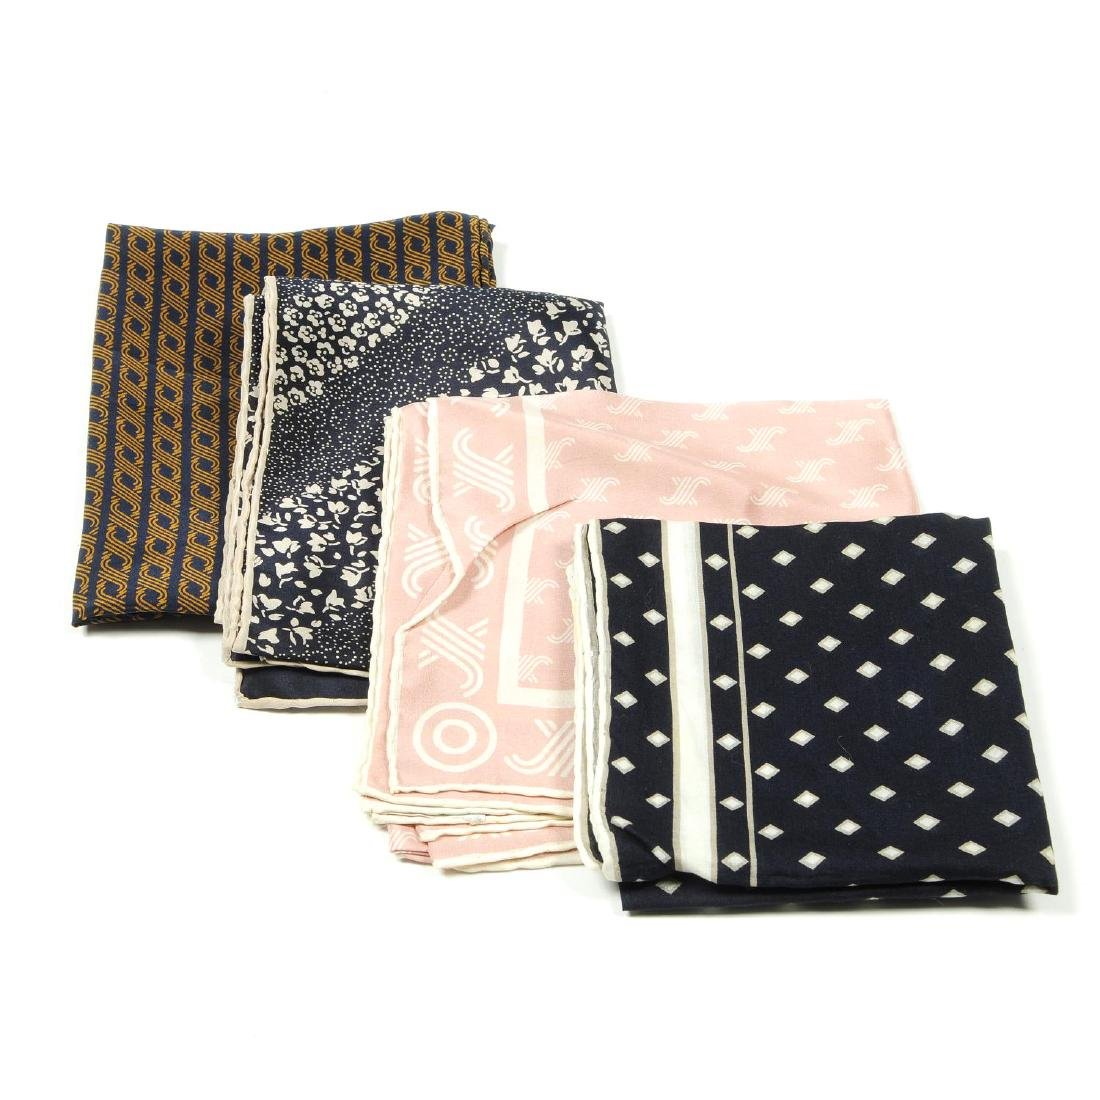 JAEGER - a selection of ten scarves. To include four